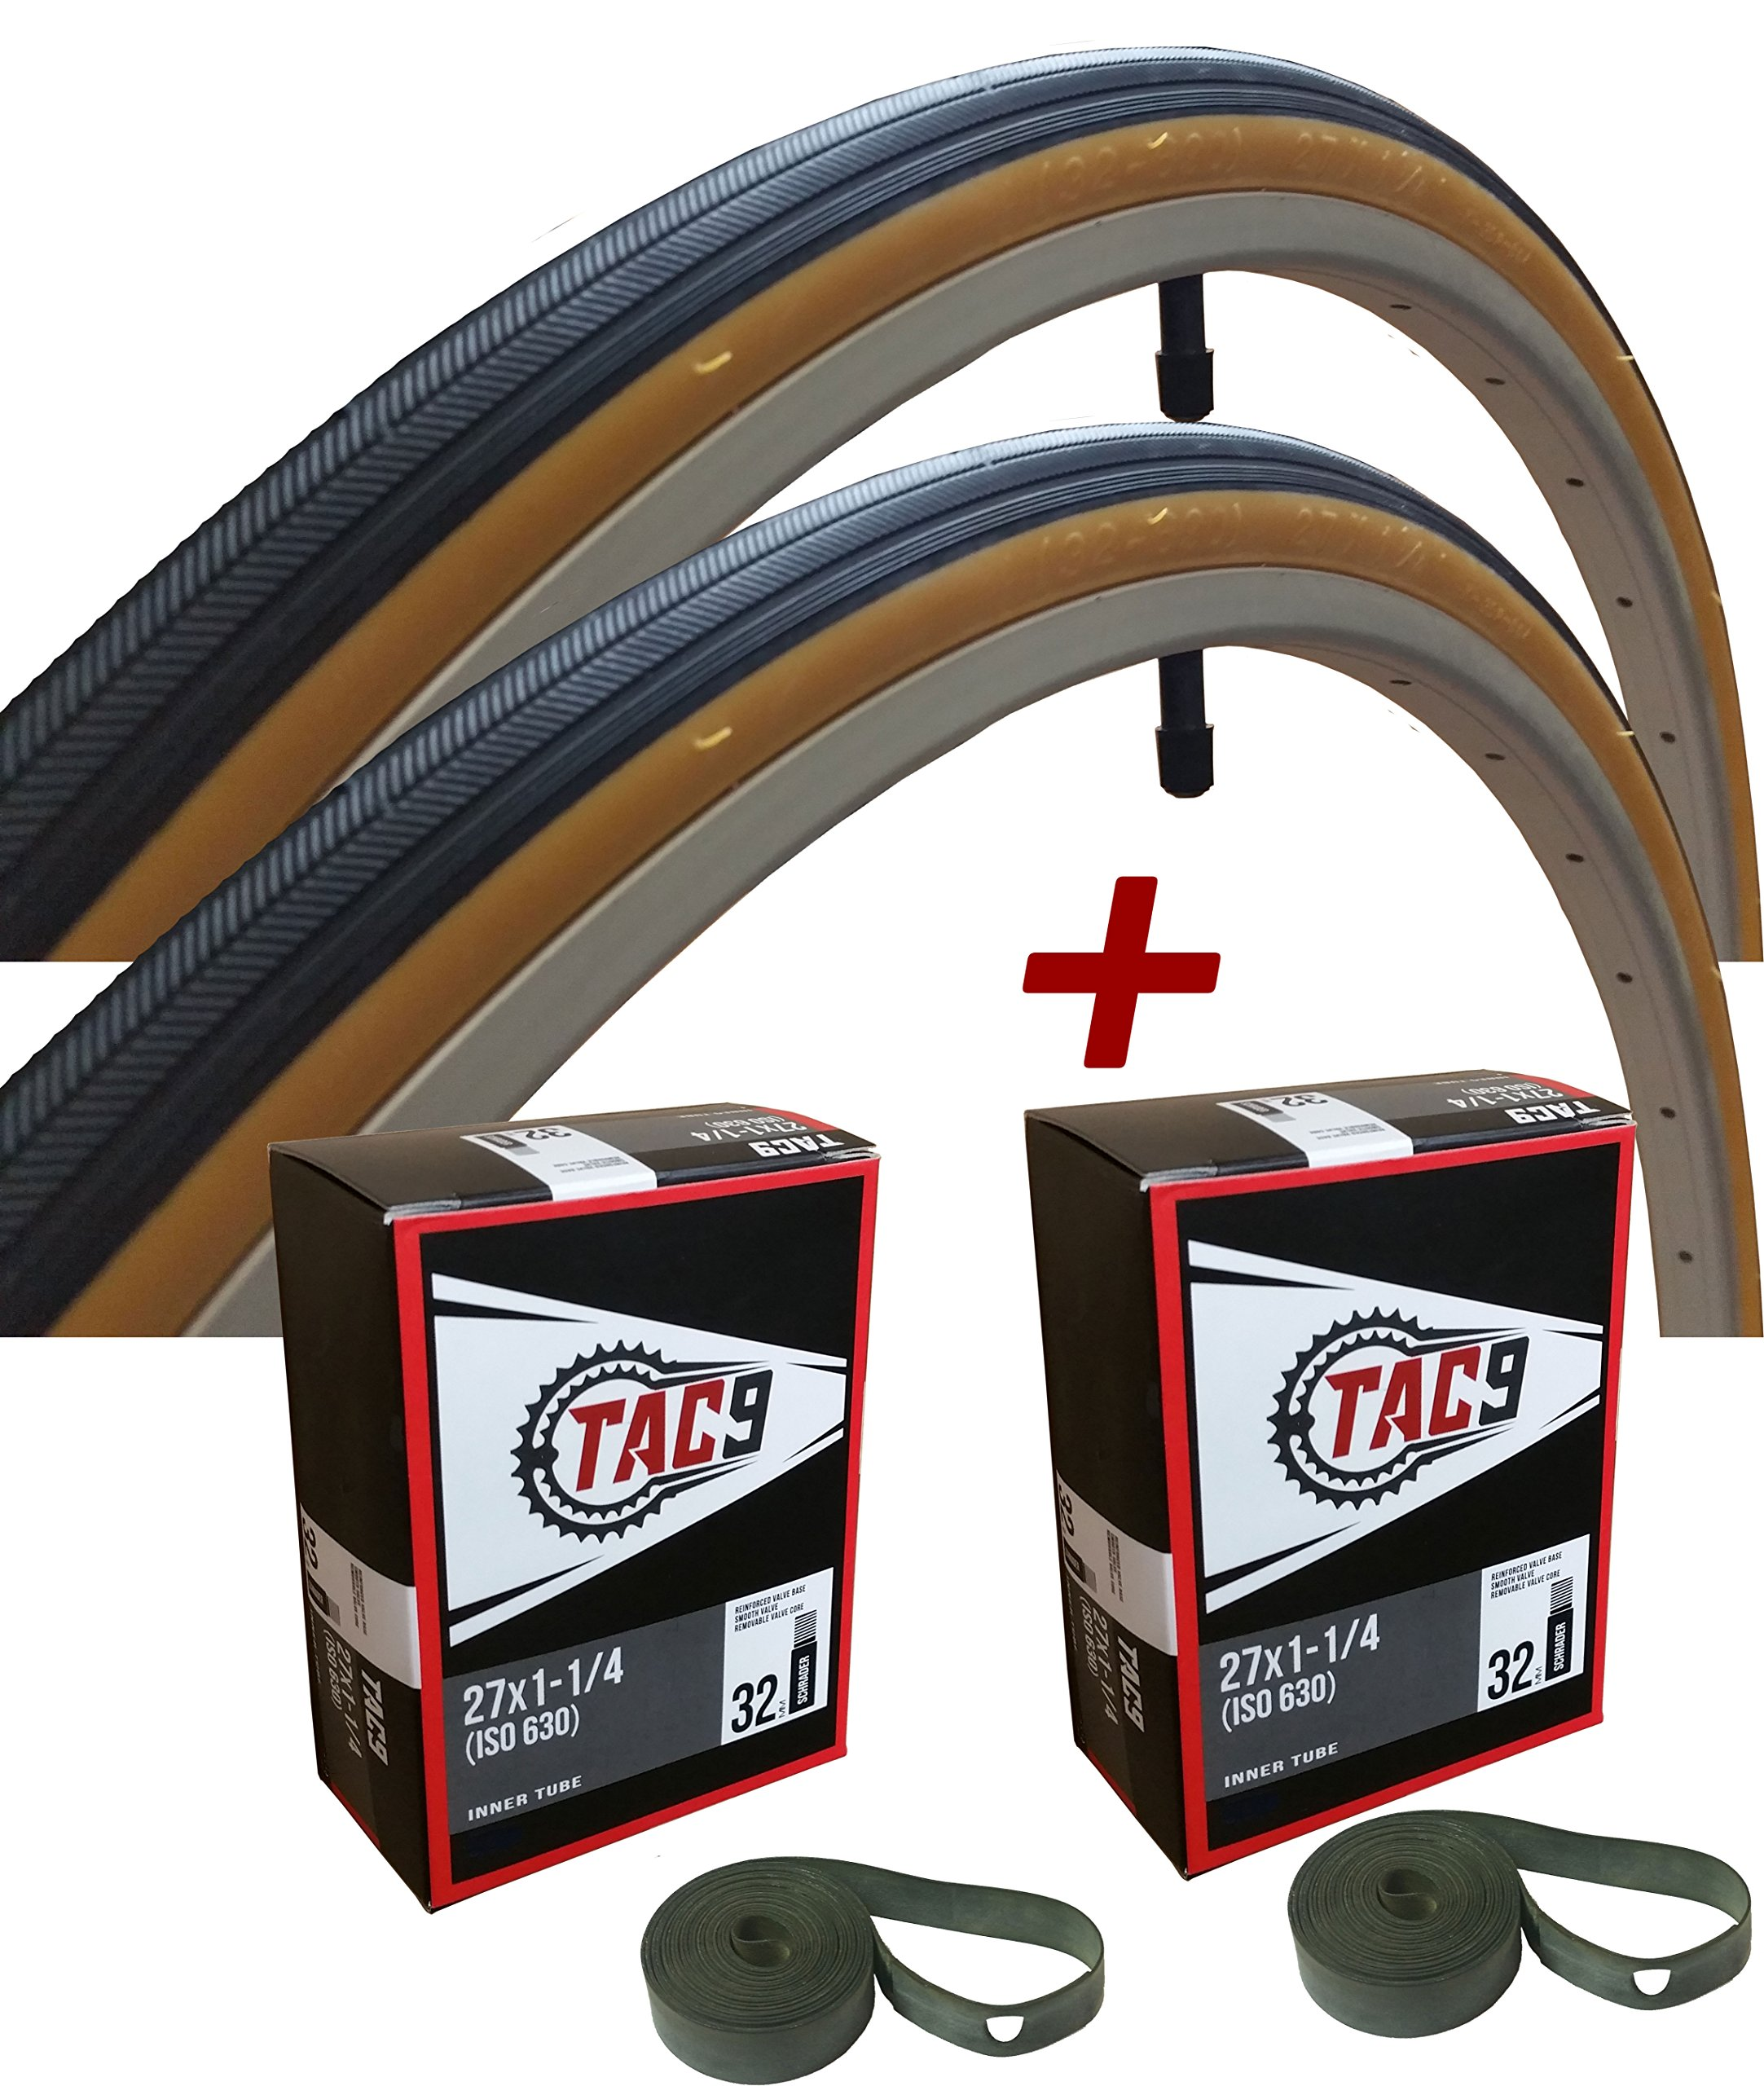 TAC 9 Two Pack - 27x1-1/4 Bike Tire, Bonus Tube and Rim Strip - Select Gum Wall or Black Wall